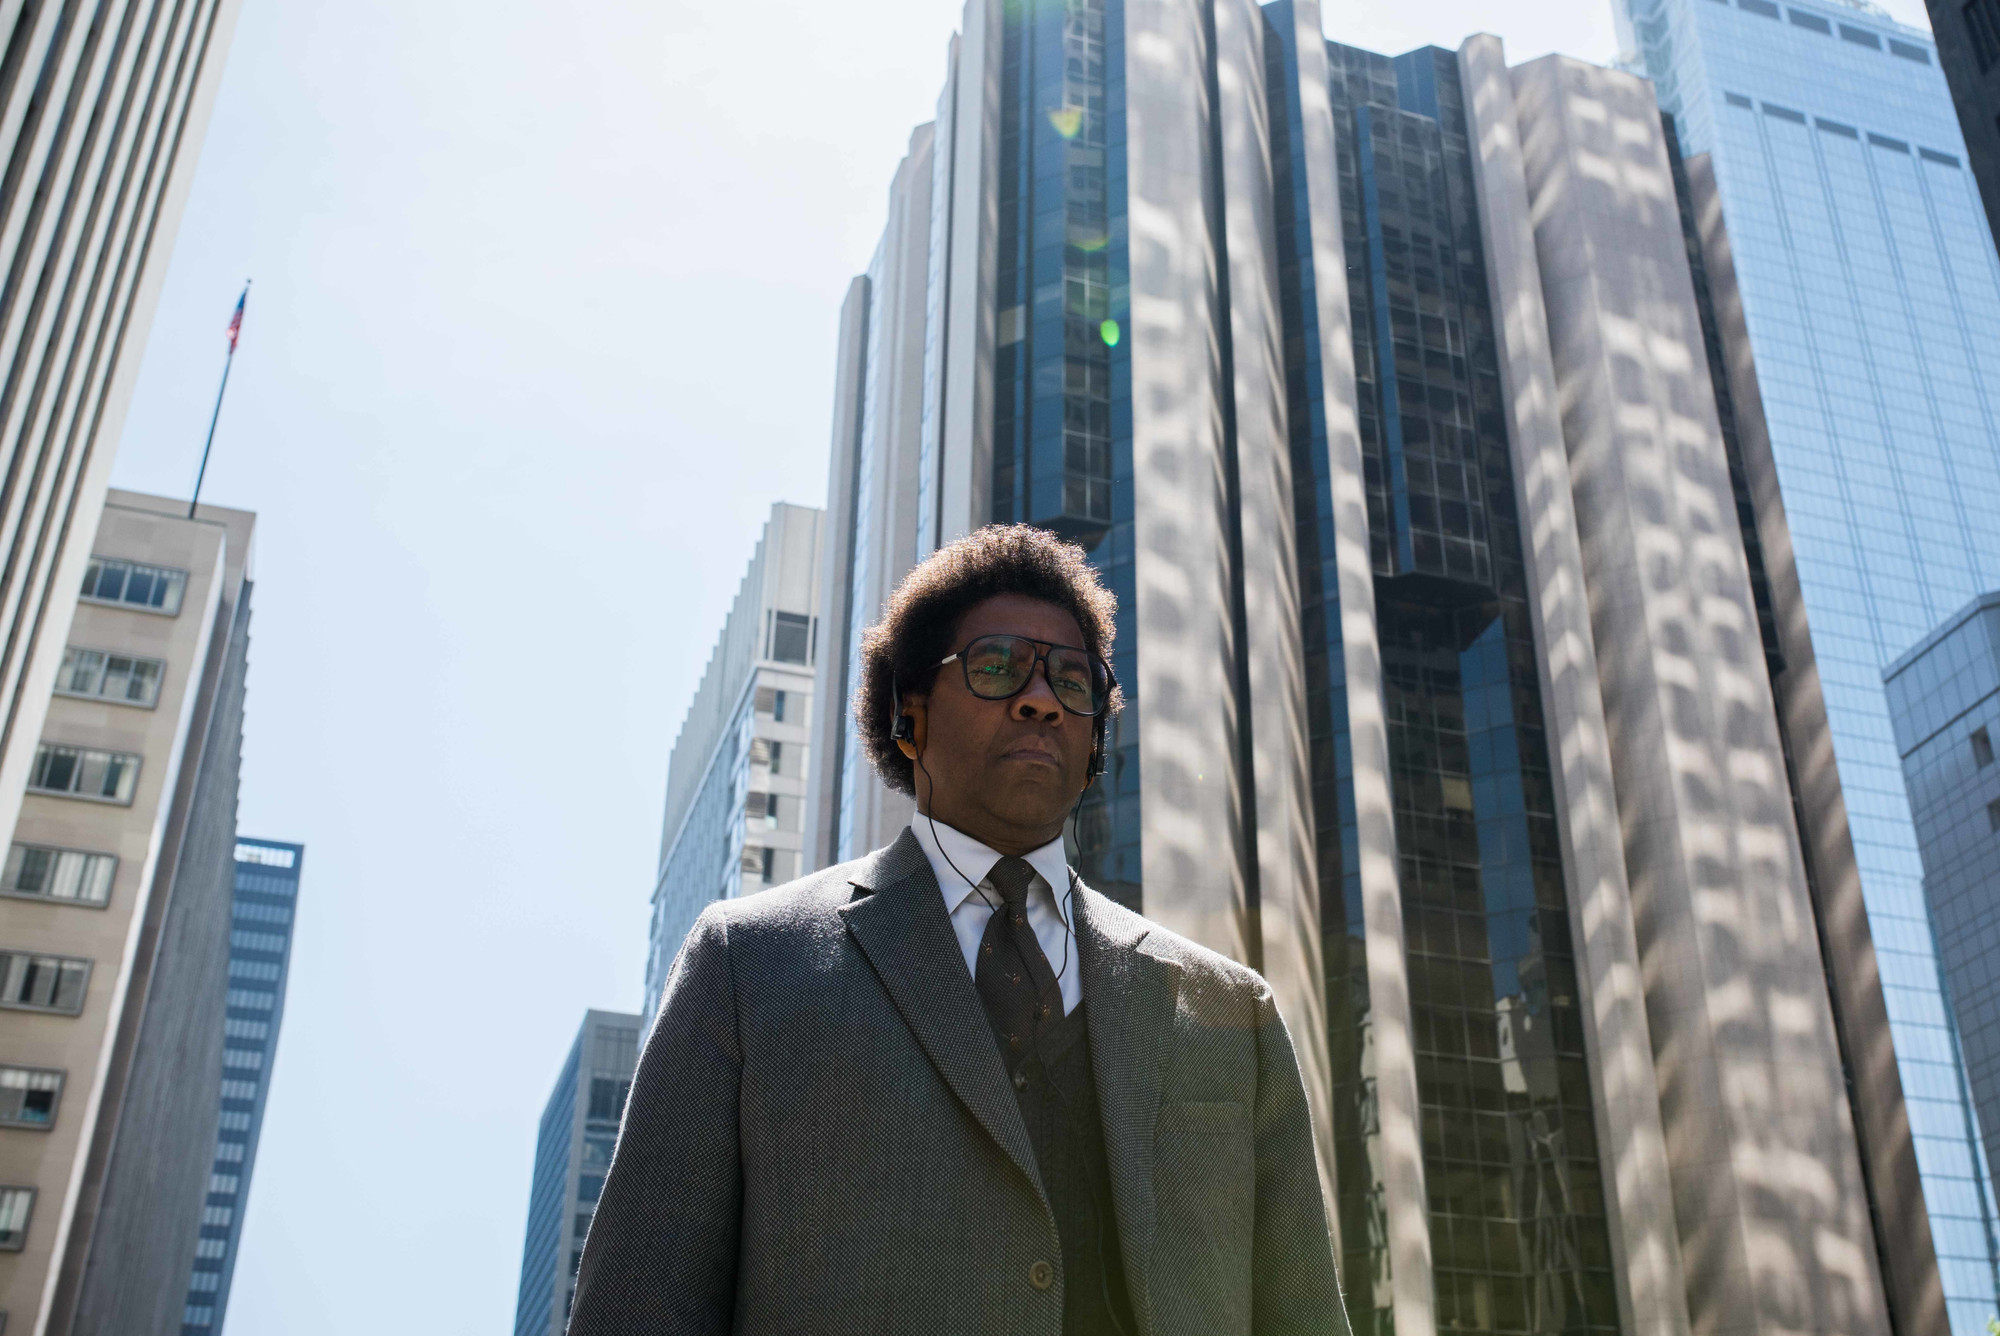 Roman J. Israel, Esq. 2017. USA. Directed by Dan Gilroy. Courtesy of Sony Pictures